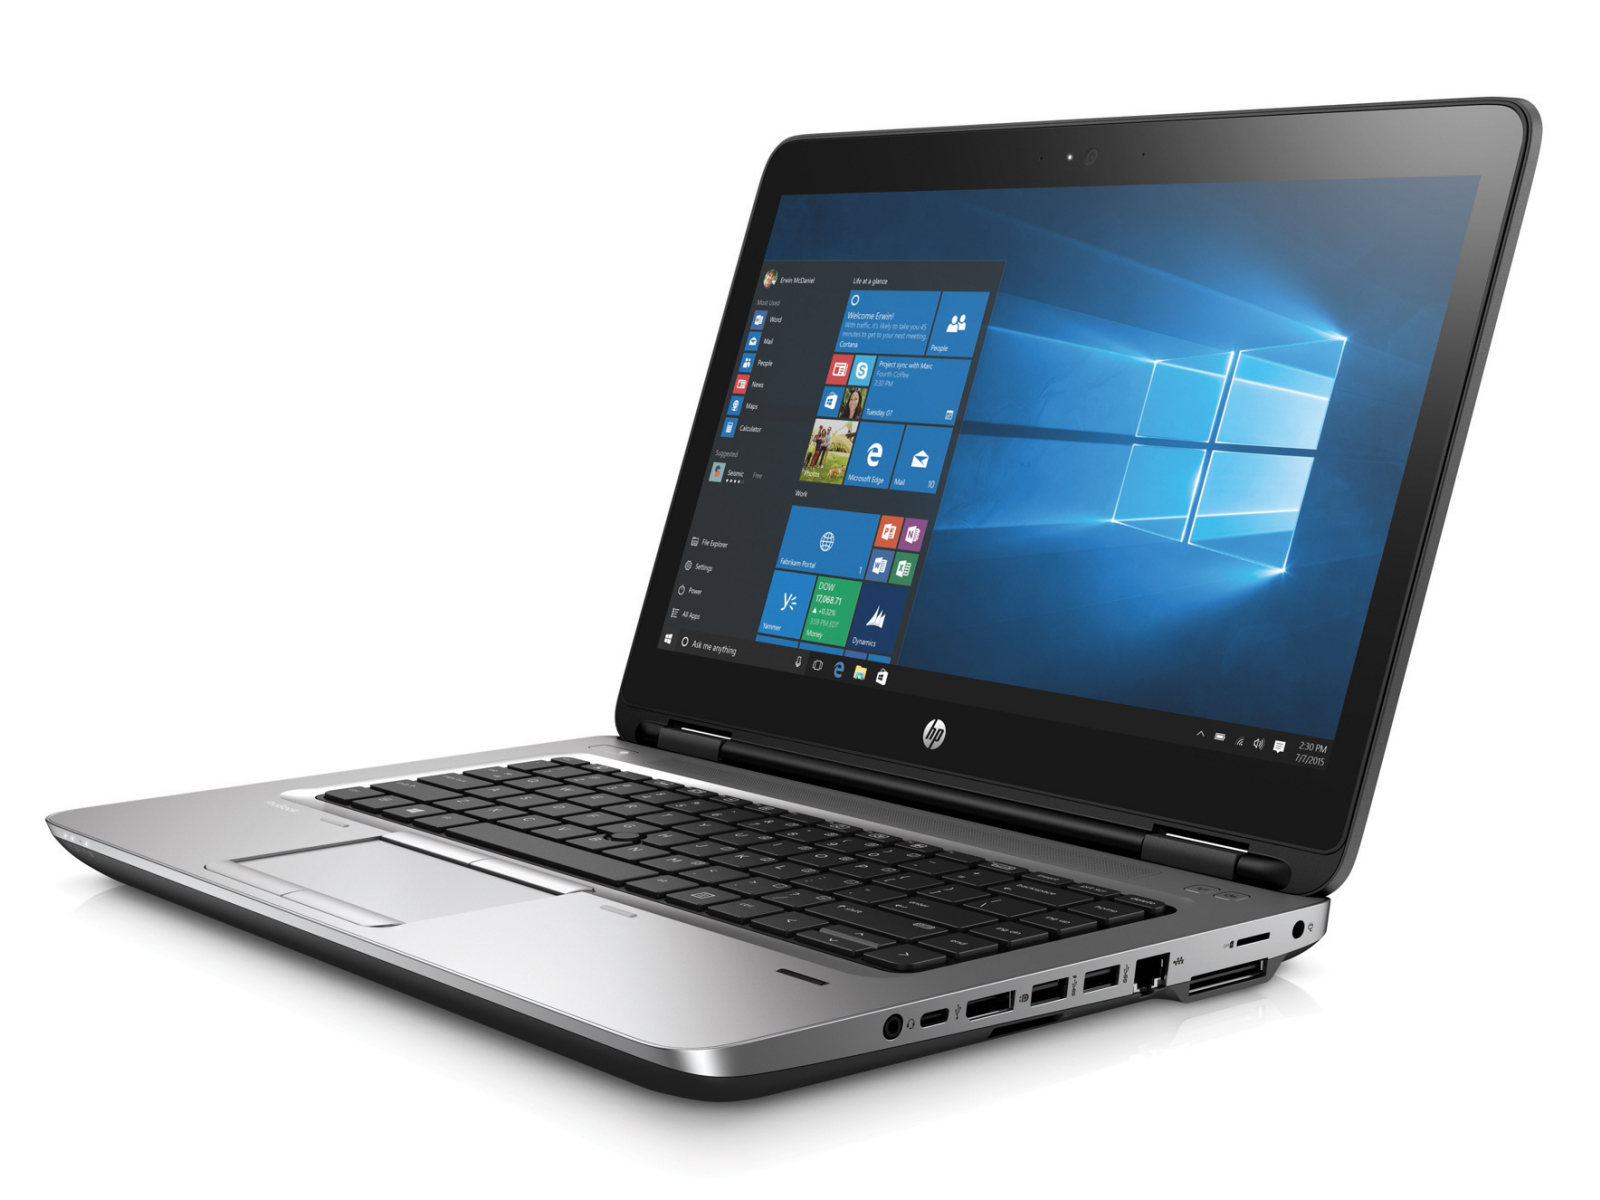 Ноутбук mi notebook air 13,3 серебристый_3